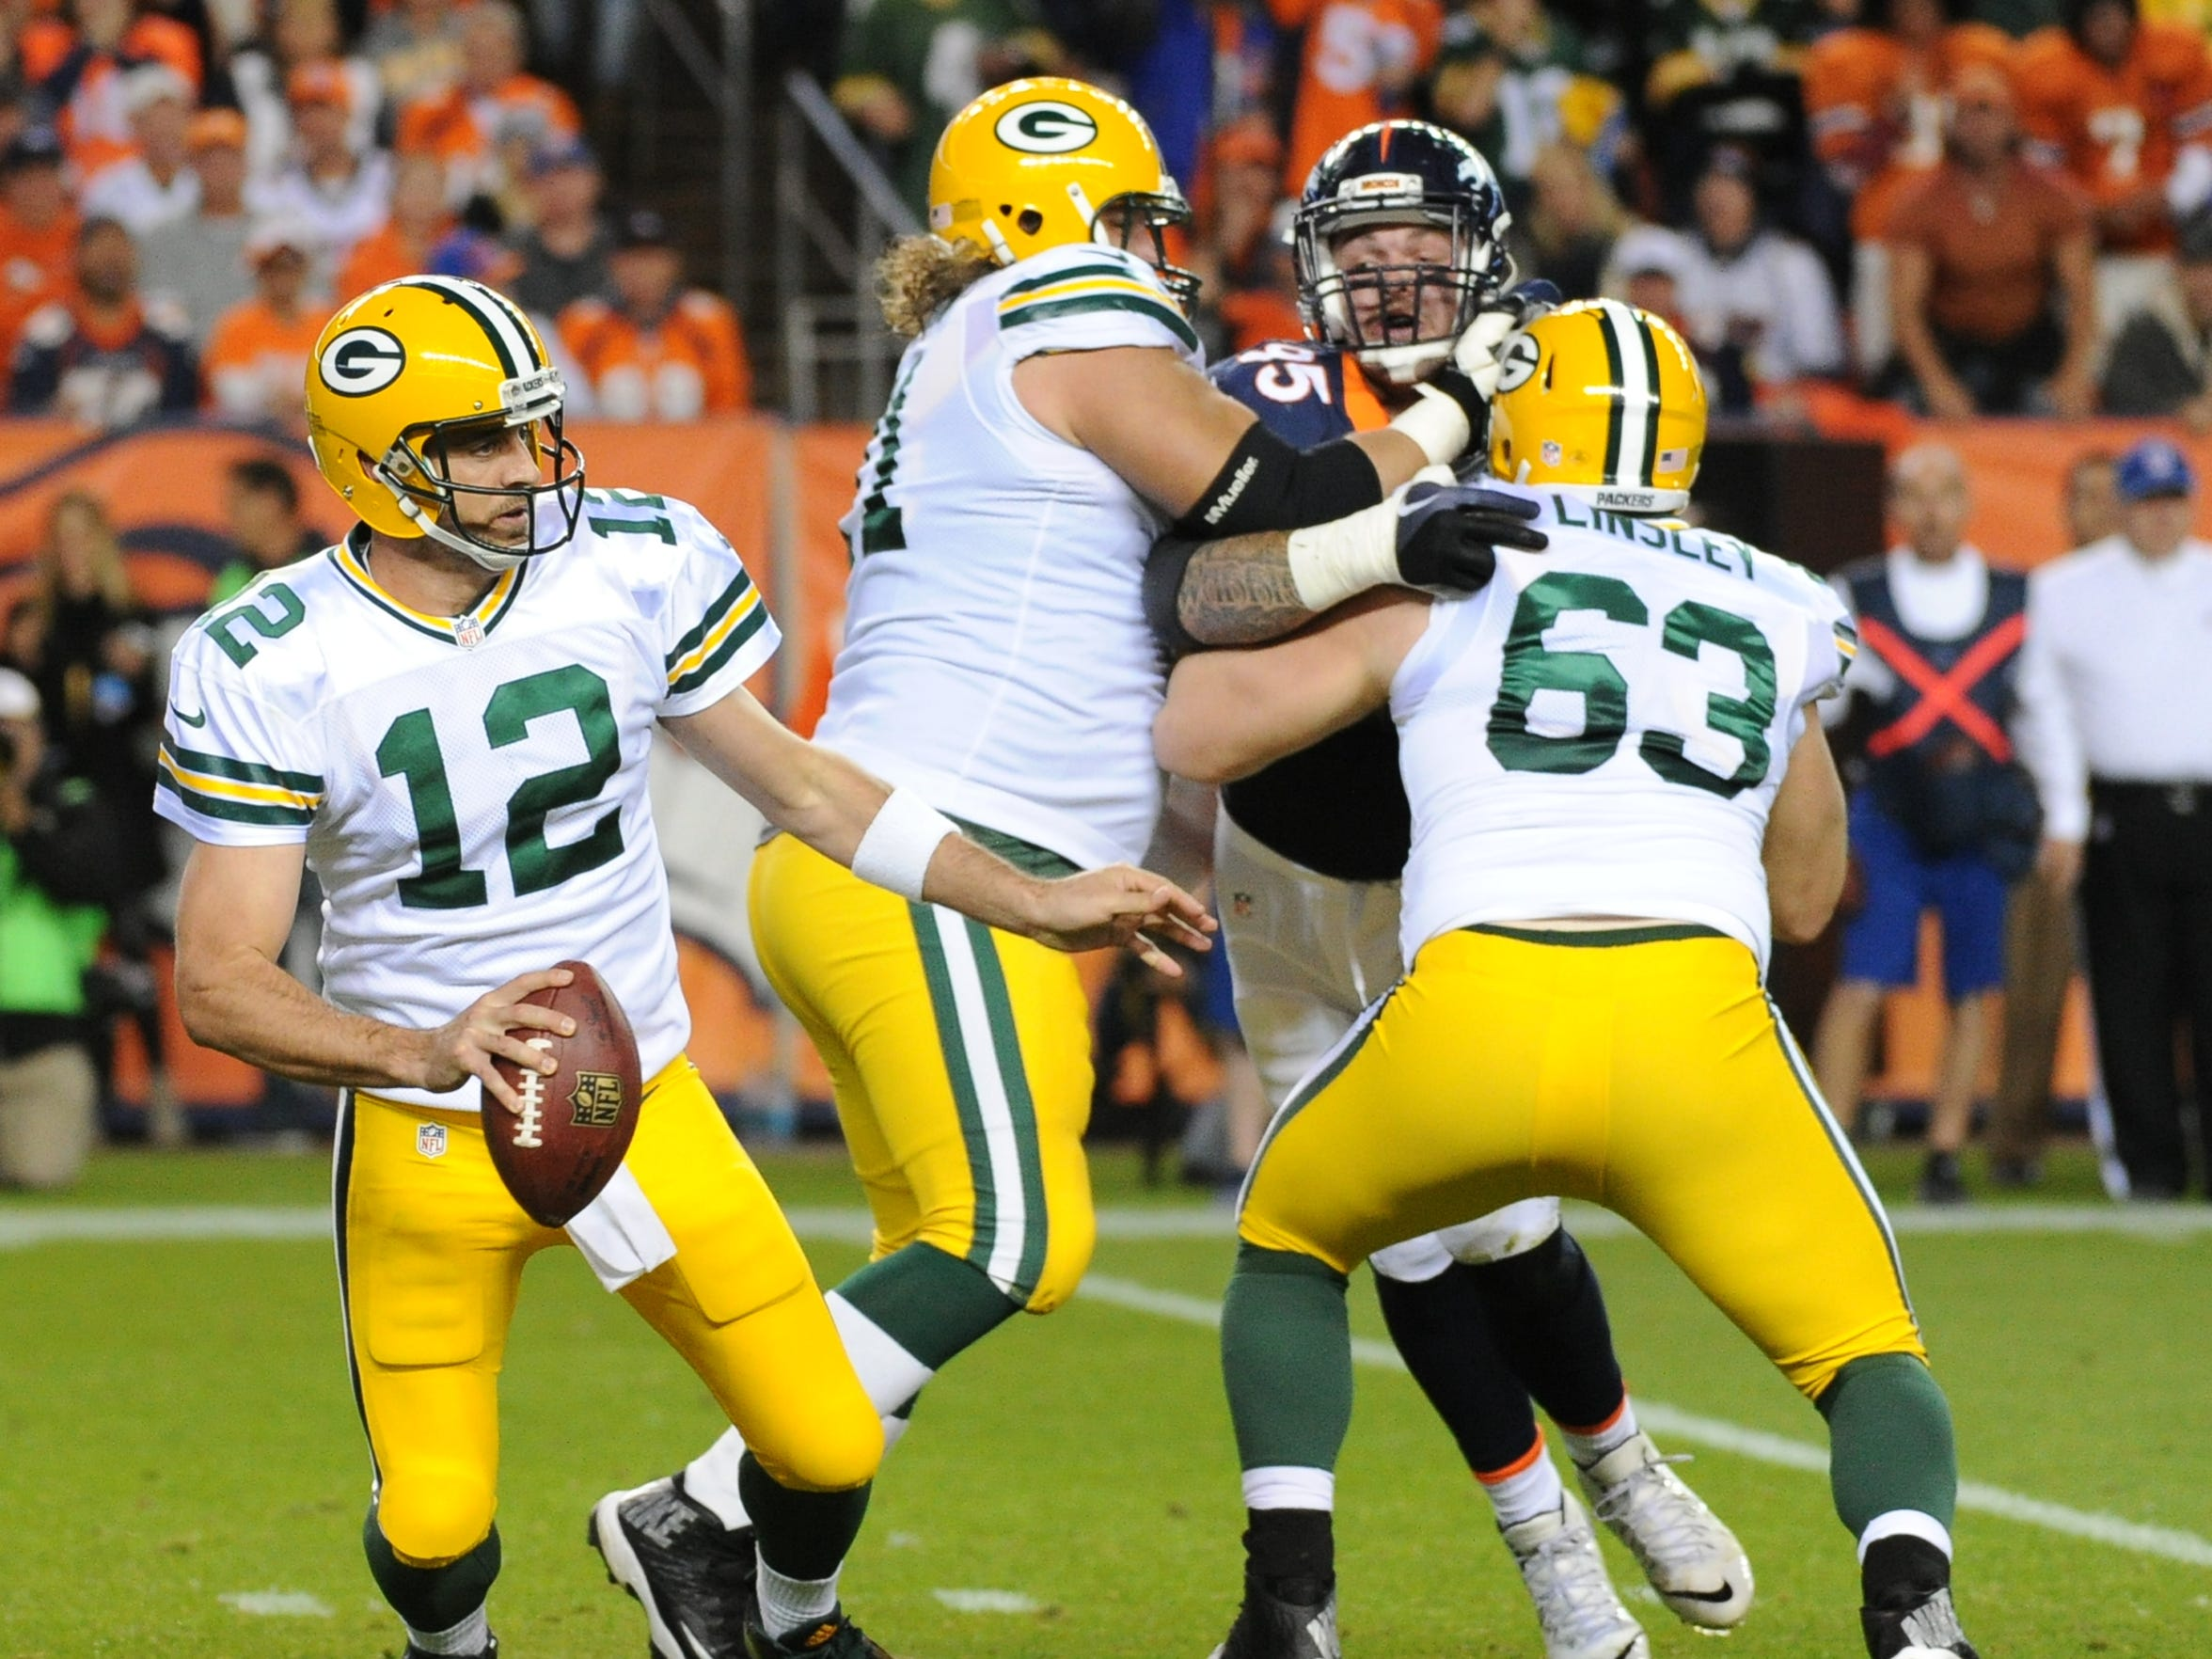 Green Bay Packers quarterback Aaron Rodgers (12) scrambles as guard Josh Sitton (71) and center Corey Linsley (63) block against the Denver Broncos at Sports Authority Field.